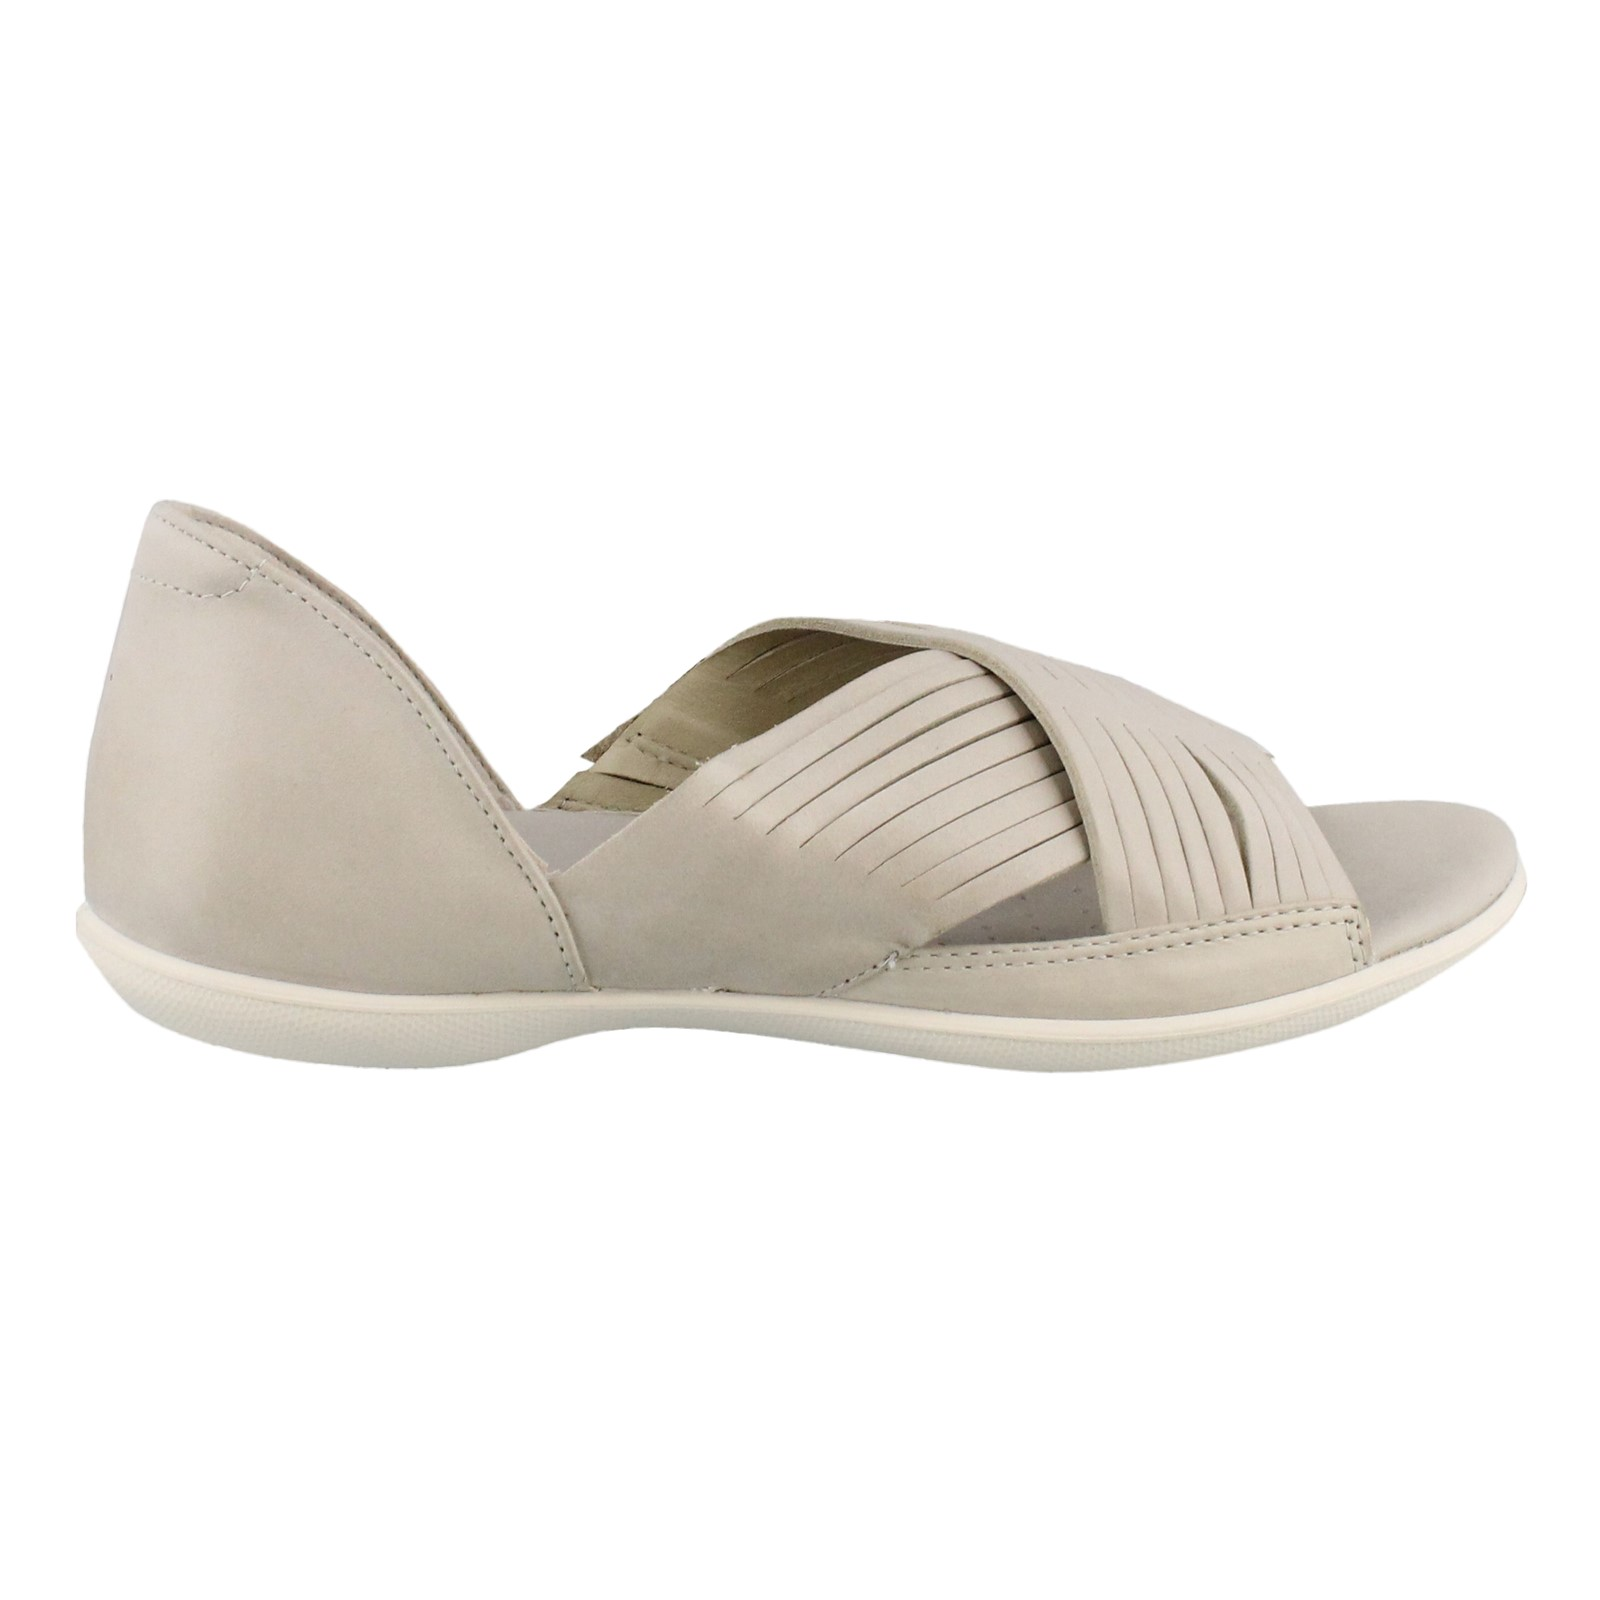 Women's Ecco, Flash Crisscross Sandals